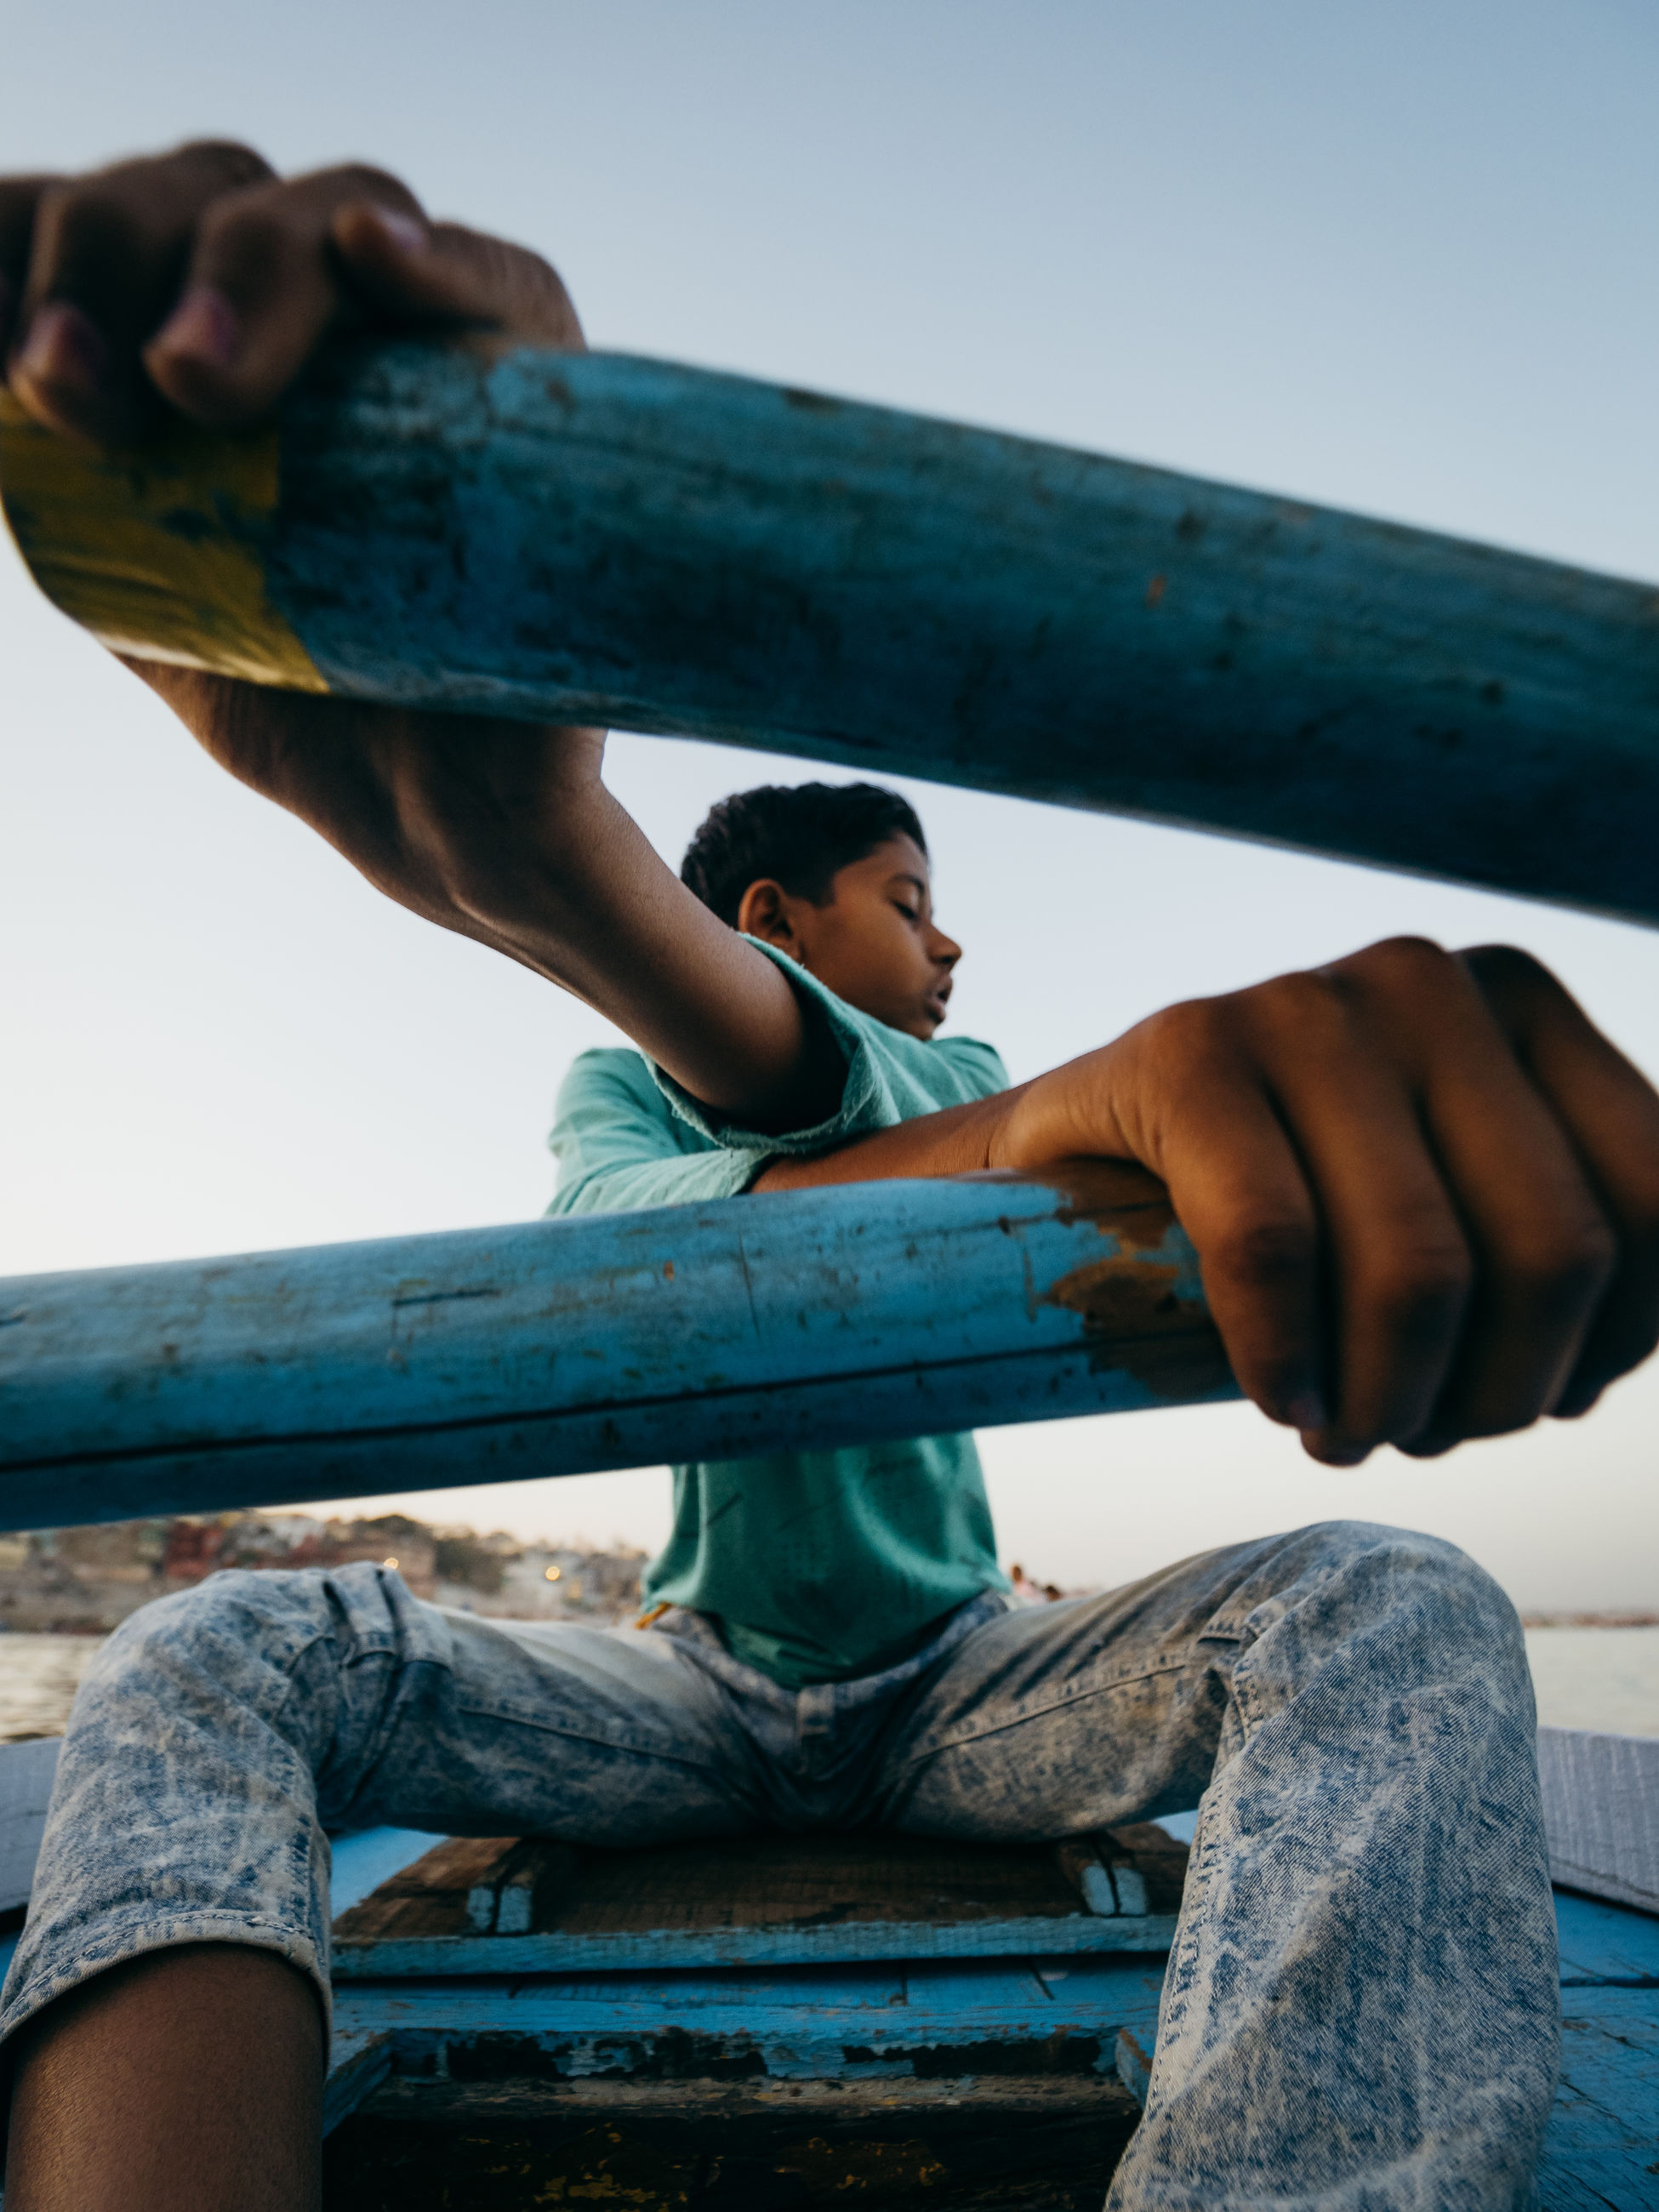 child, boys, sky, real people, men, childhood, lifestyles, males, people, clear sky, focus on foreground, day, casual clothing, leisure activity, girls, wood - material, nature, low angle view, outdoors, jungle gym, human arm, innocence